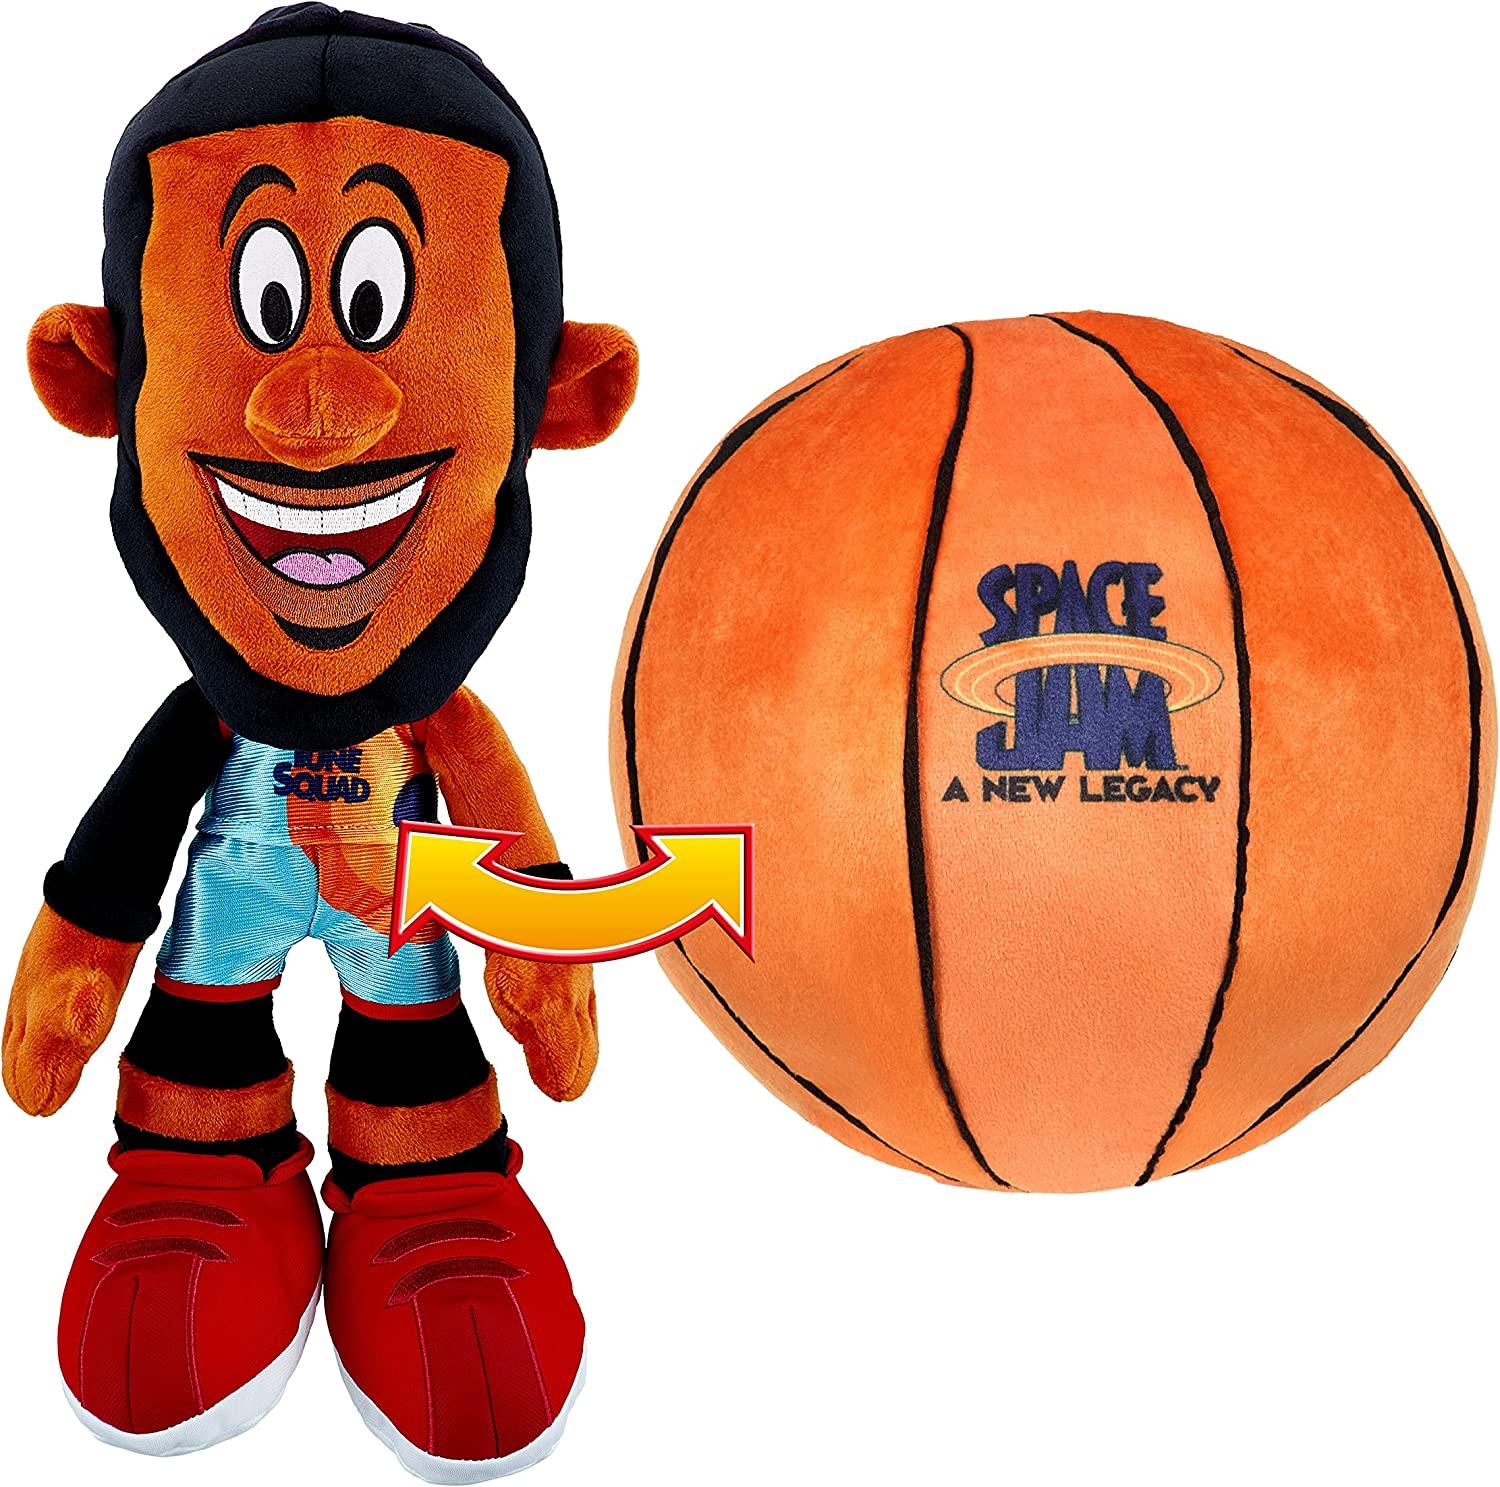 Space Jam: A New Legacy Transforming LeBron James Plush - Transform from Ball to LeBorn